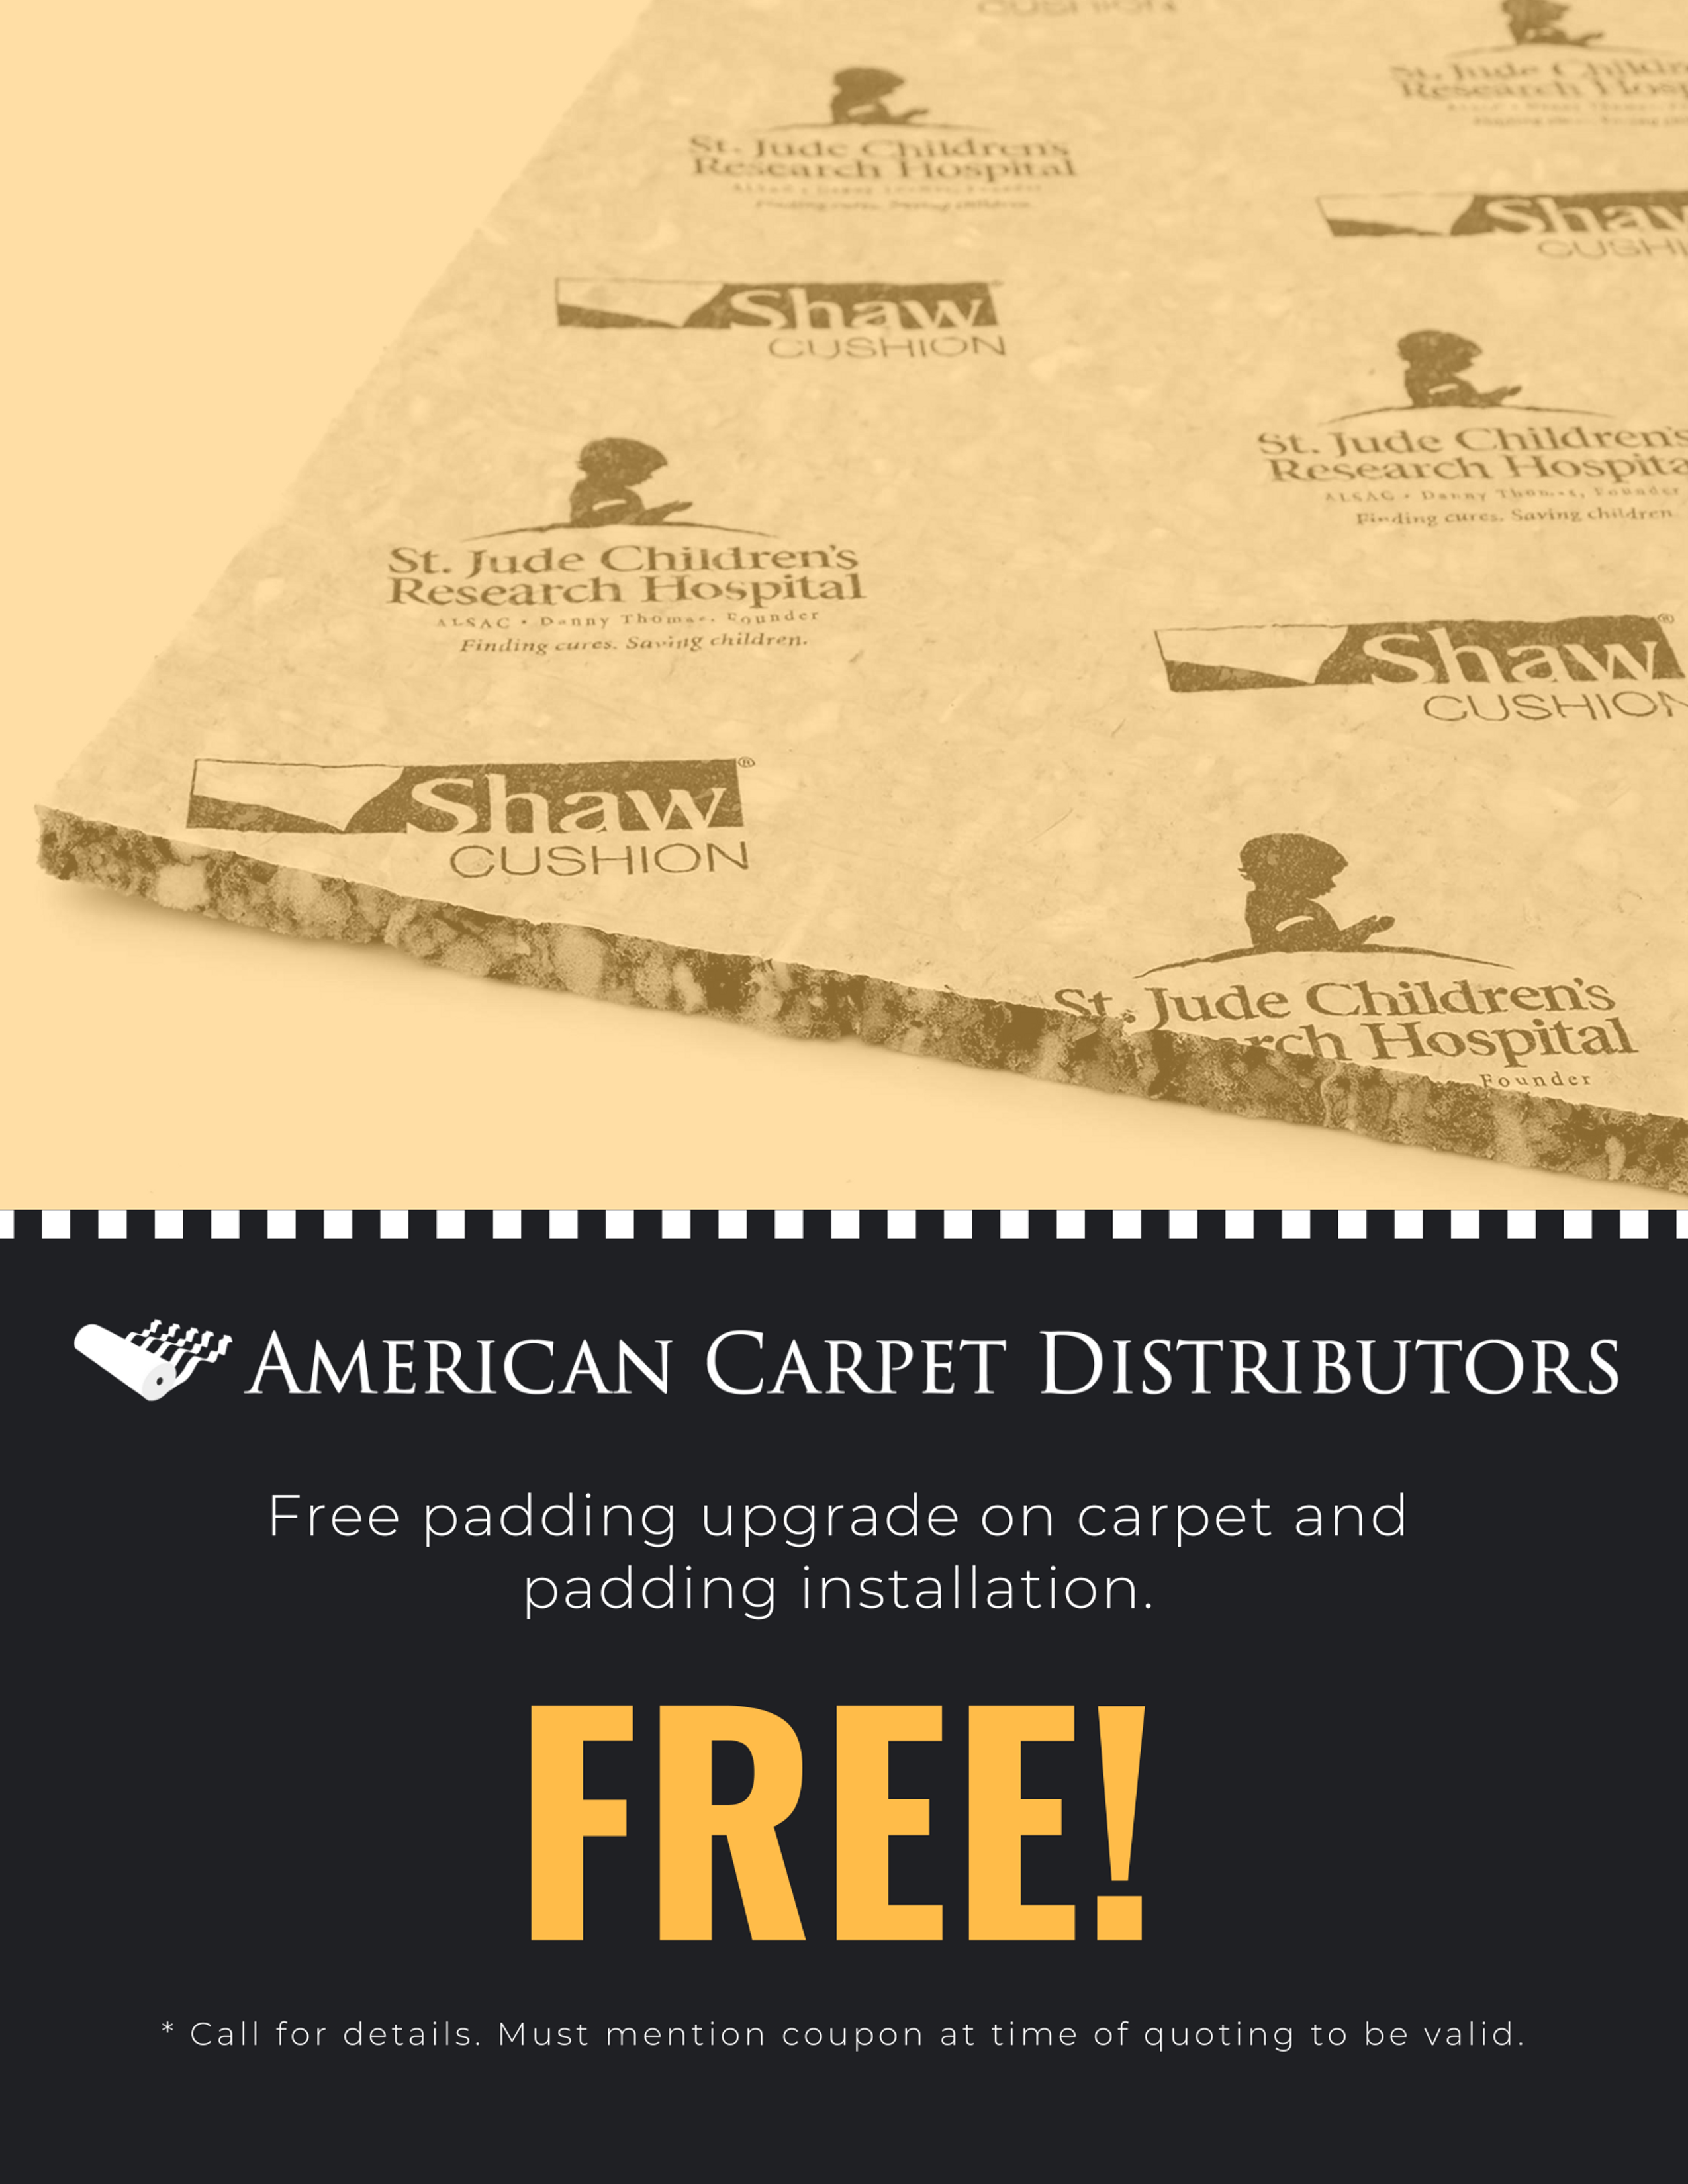 Carpet and Padding Installation Coupon